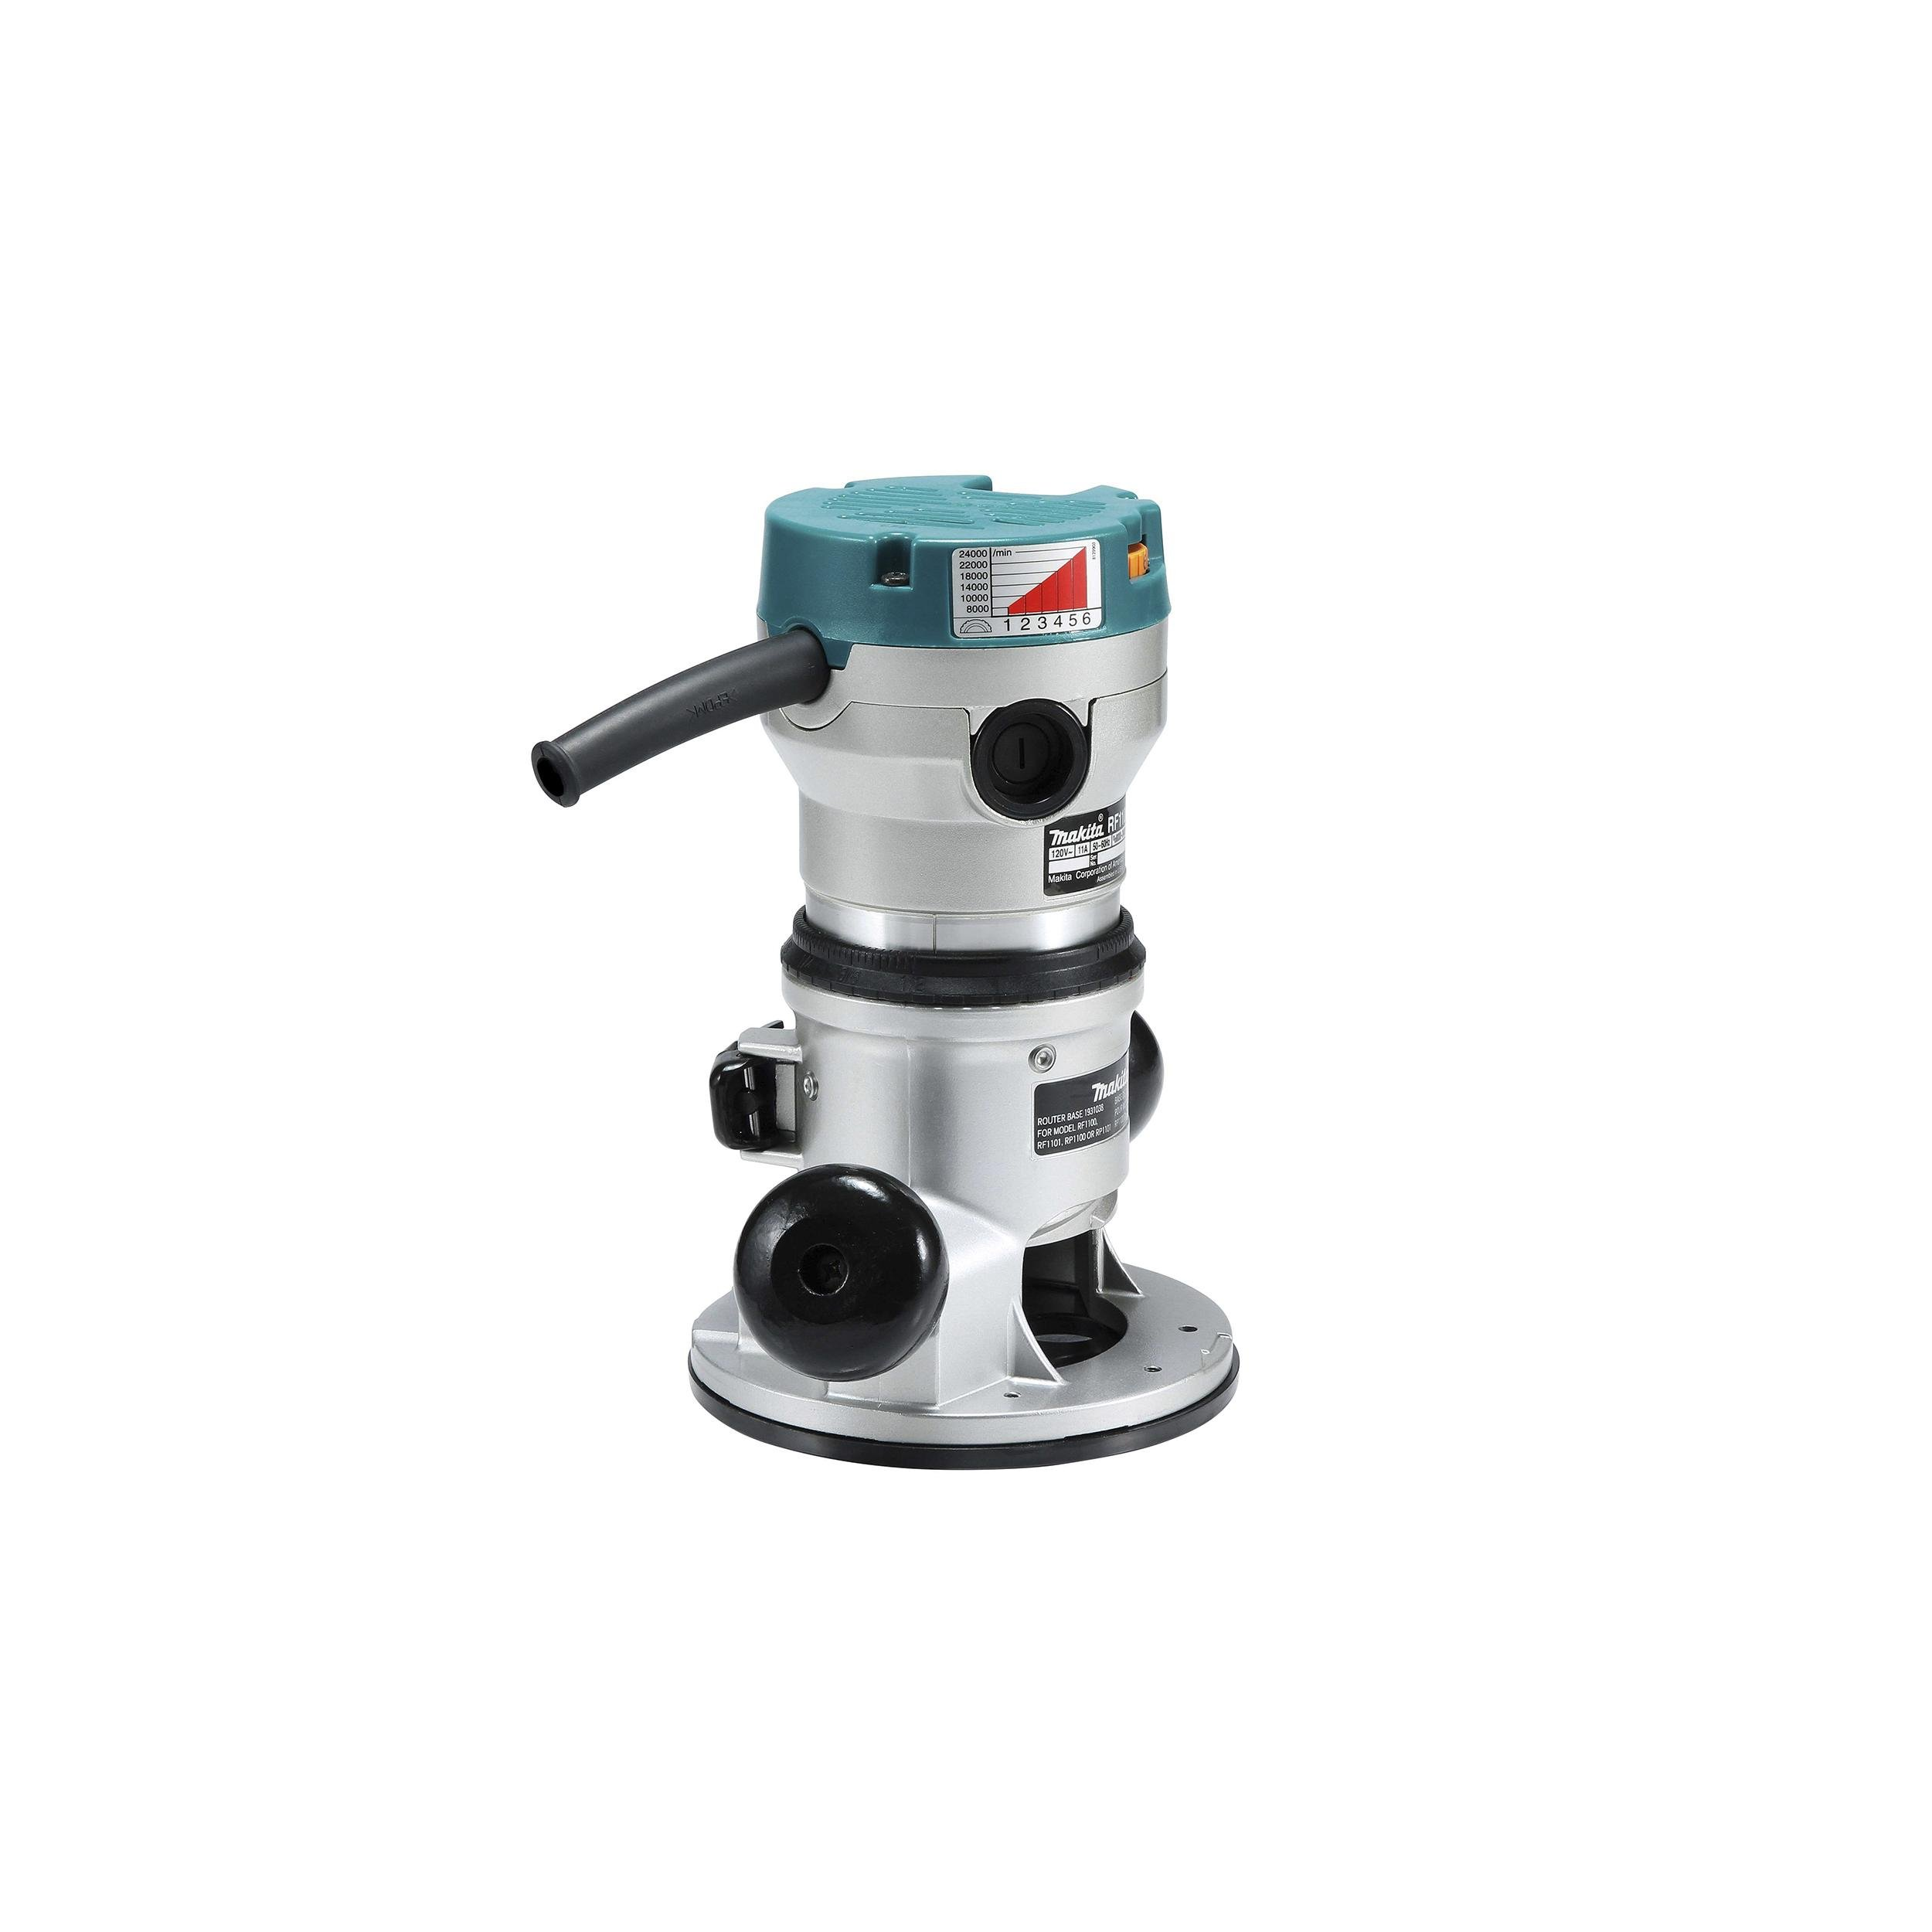 Makita RF1101 2-1/4-Horsepower Variable Speed Router